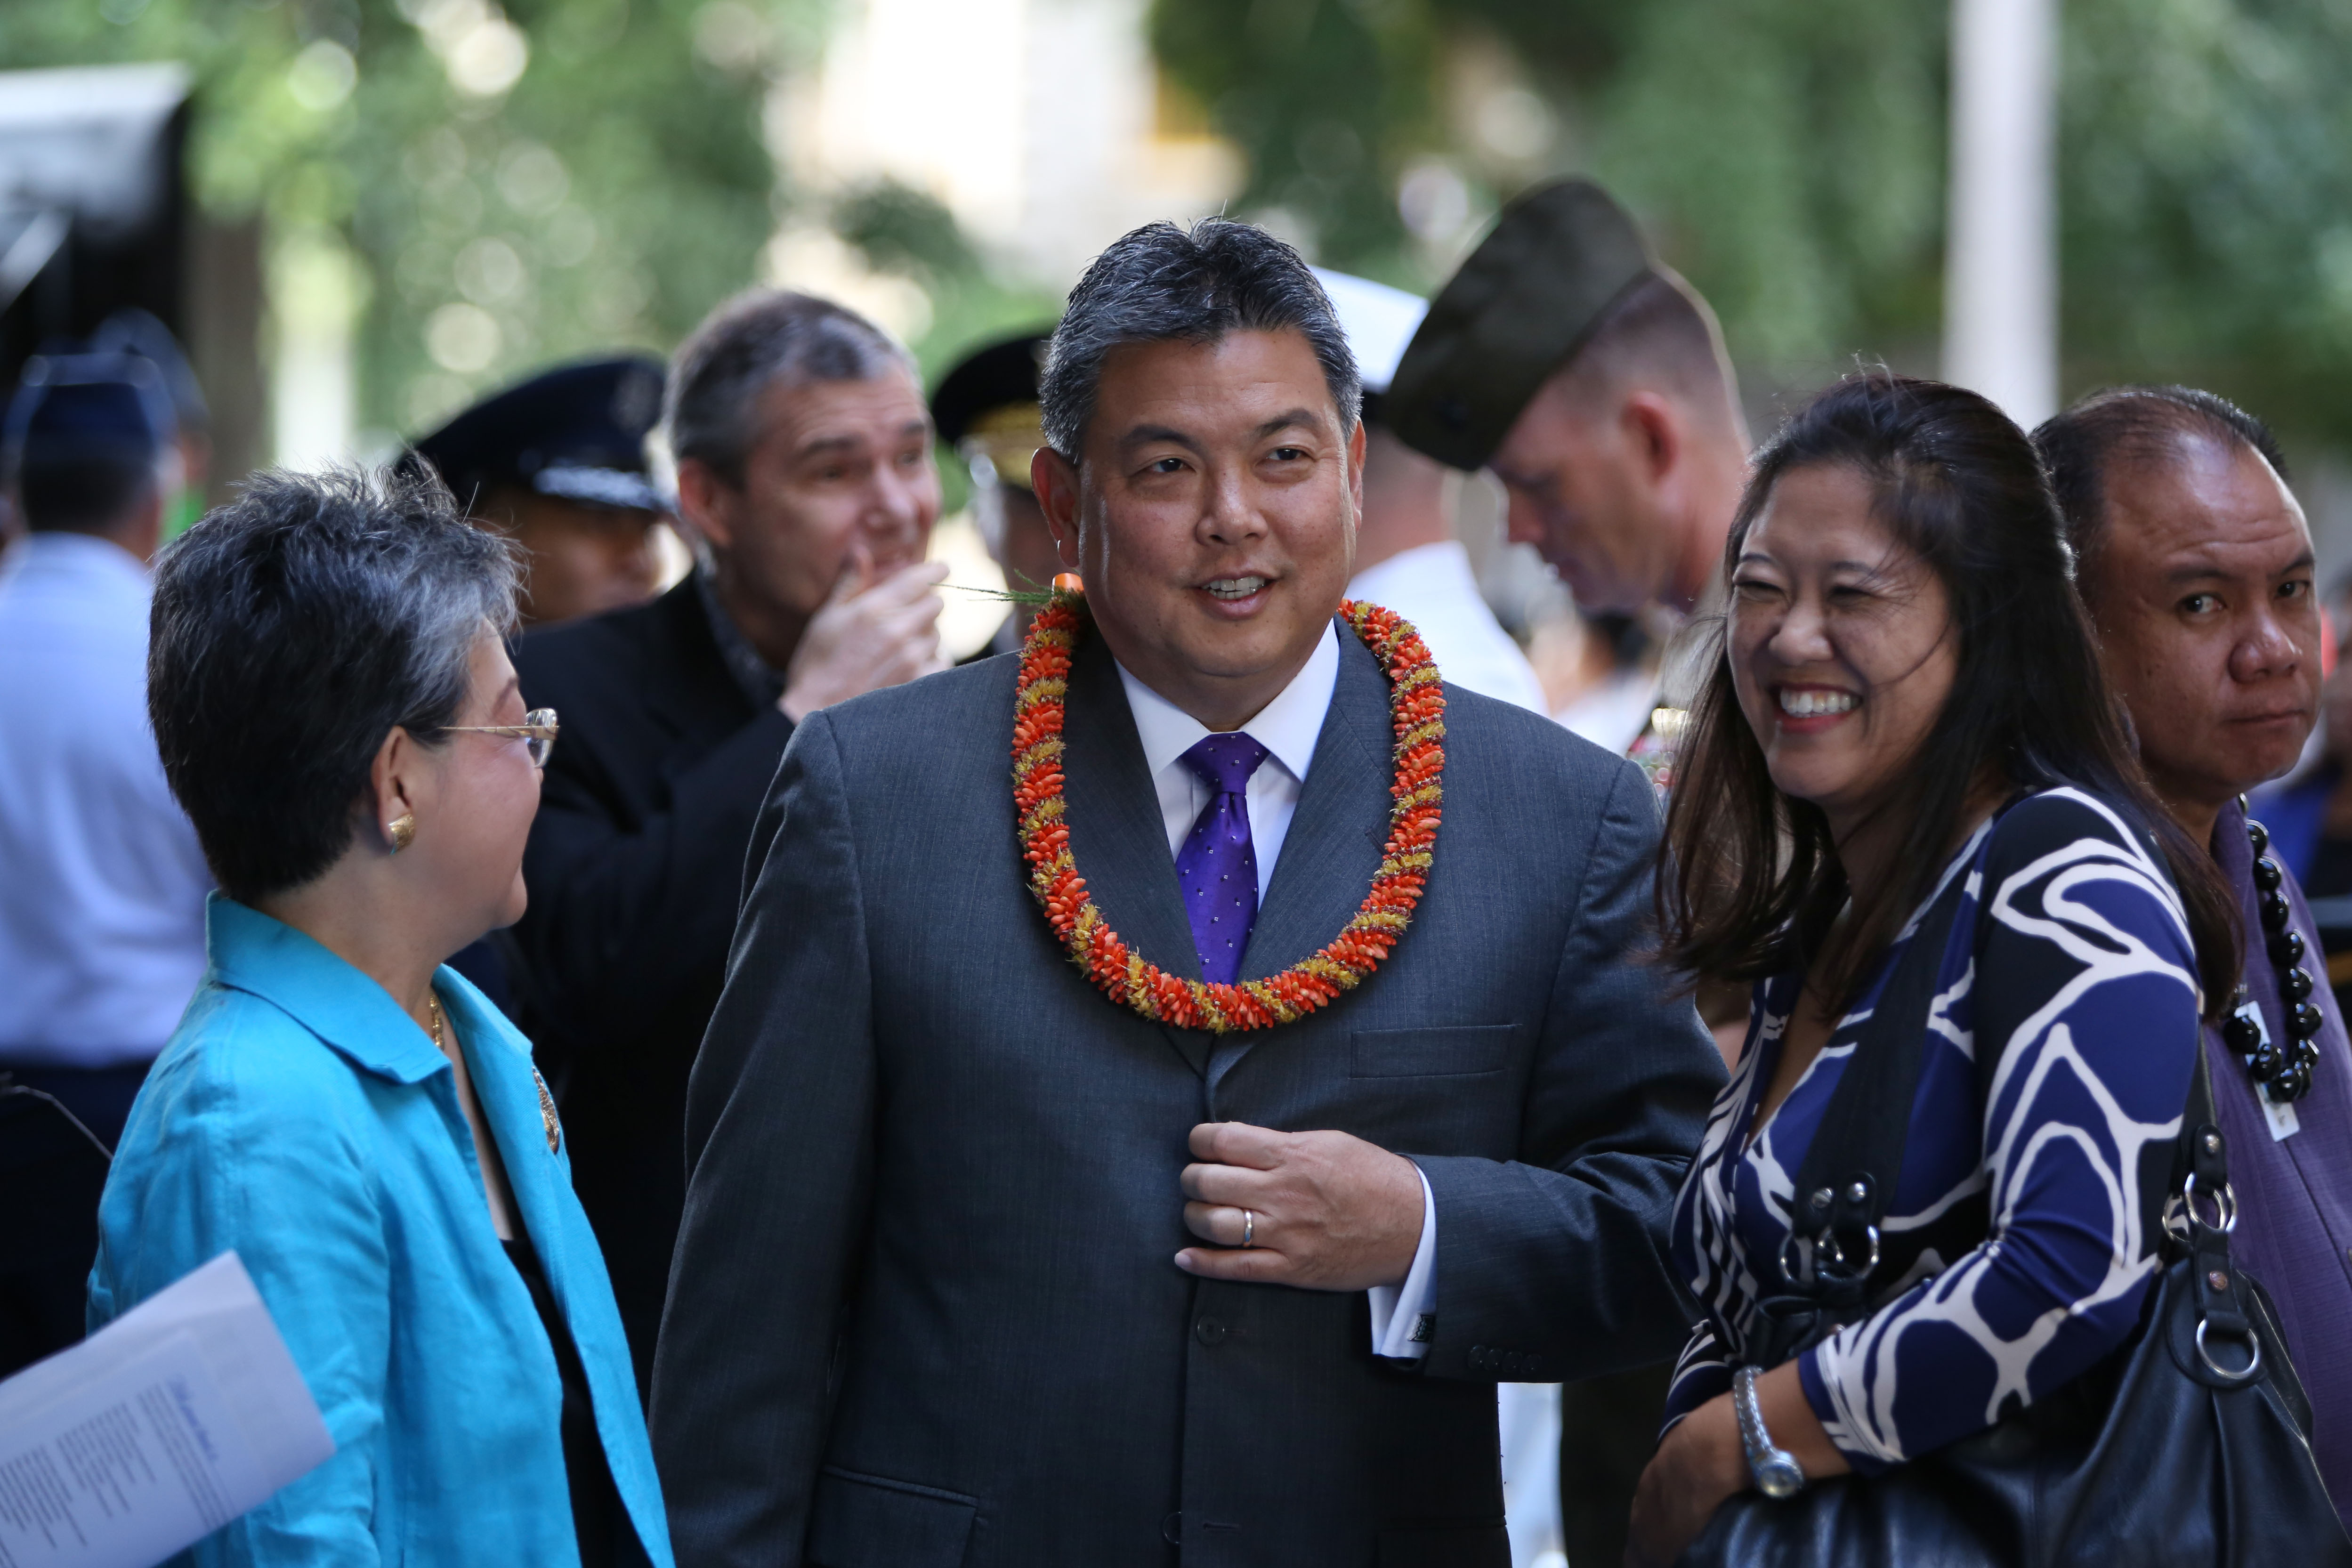 <p><strong>December 2014, The Ige Inauguration:</strong> Congressman-Elect Takai with his wife Sami at the inauguration ceremony for Gov. David Ige.</p>